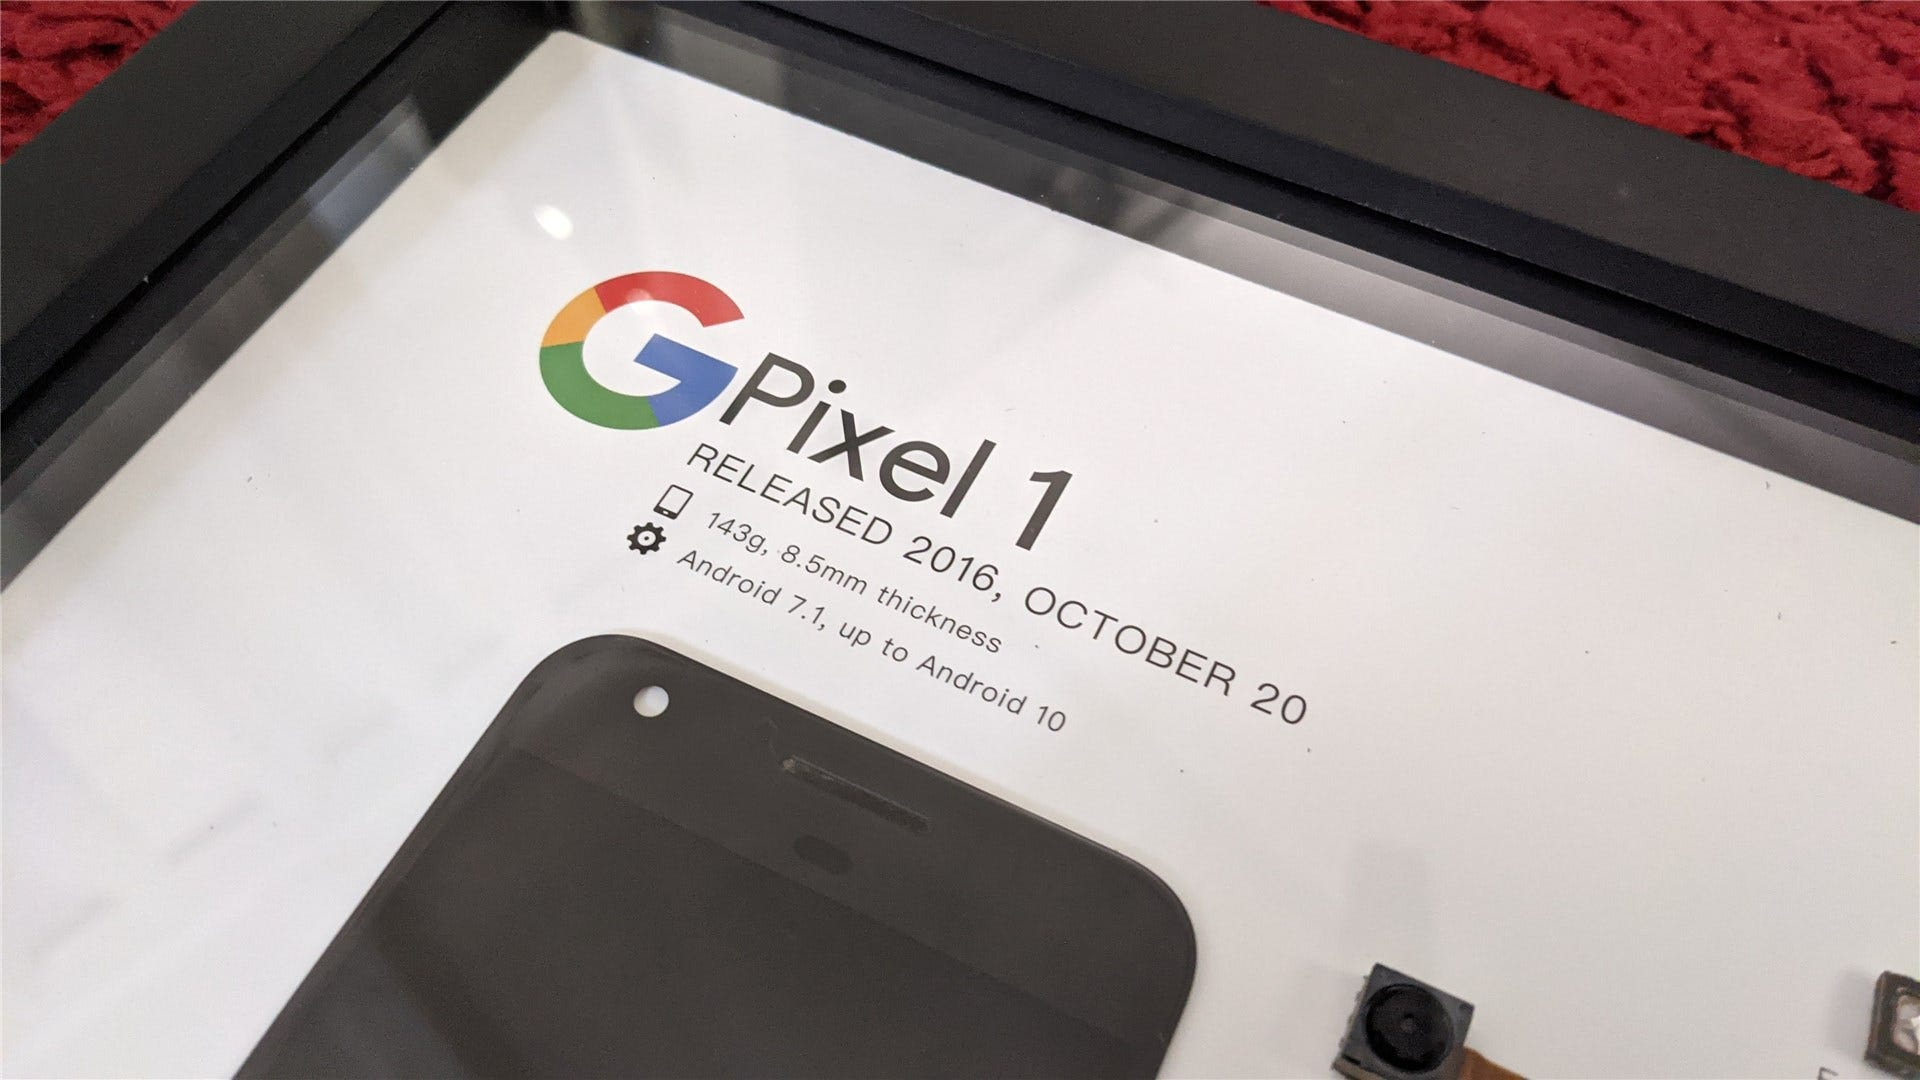 A close up of the Pixel 1 details, including release date and Android versions